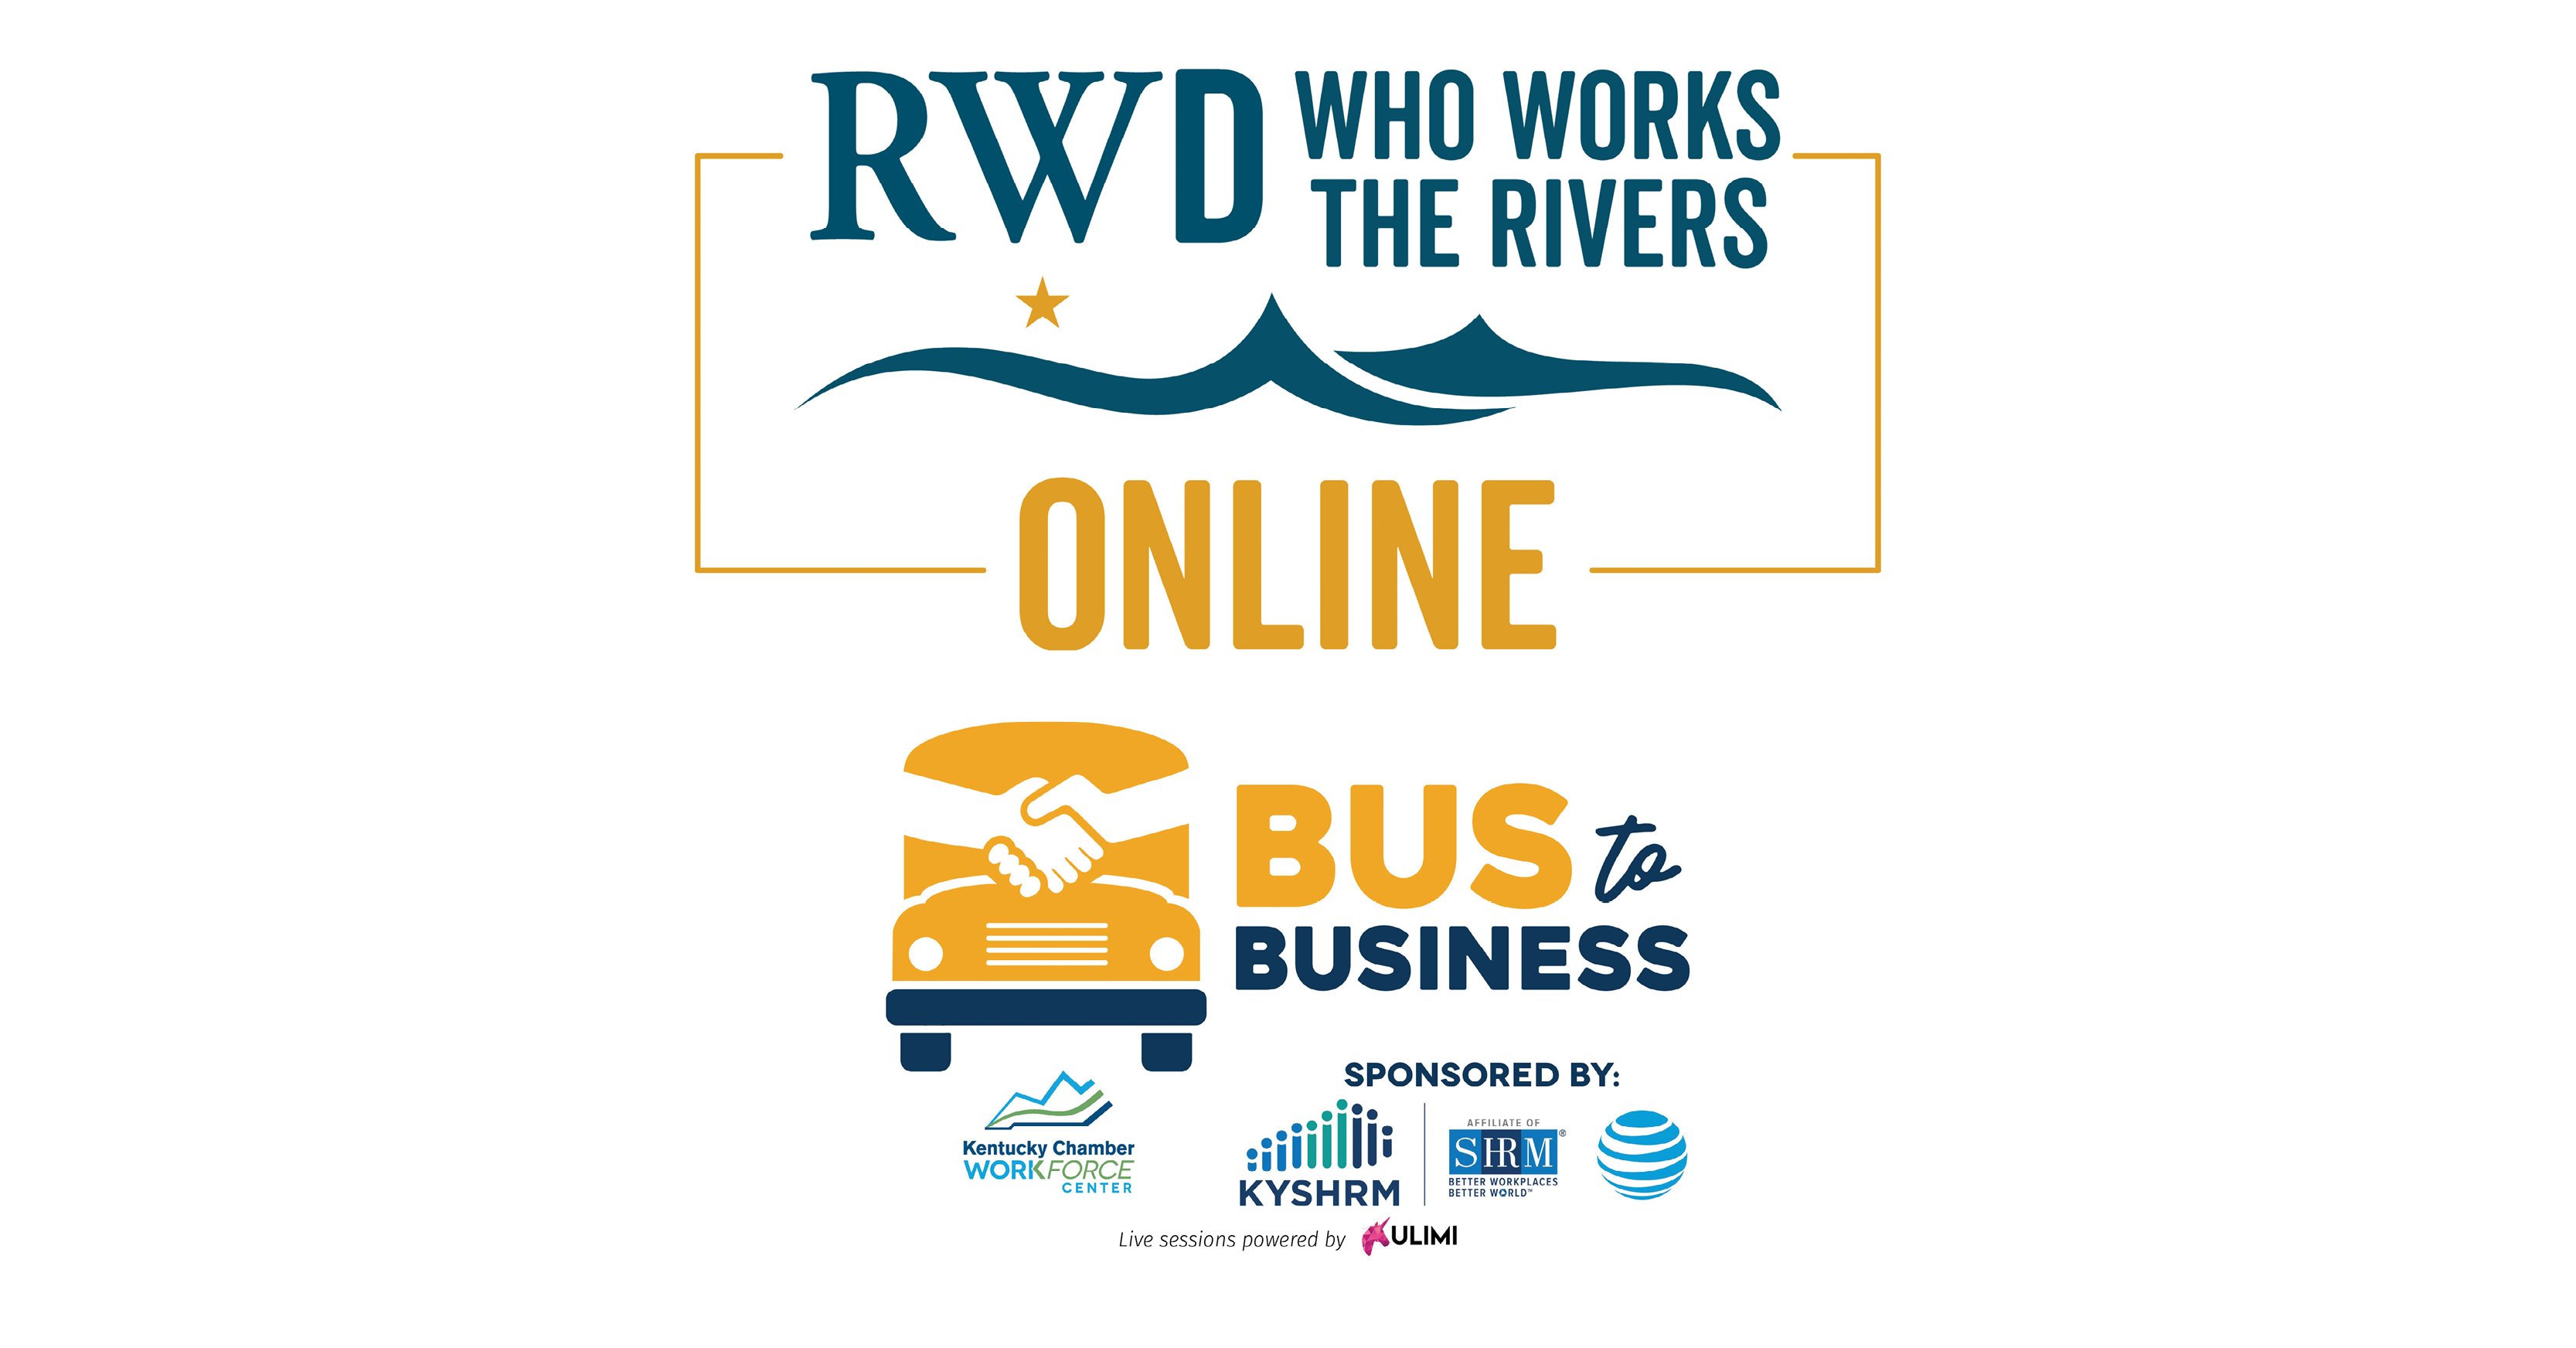 Who Works the Rivers Workforce Wednesday